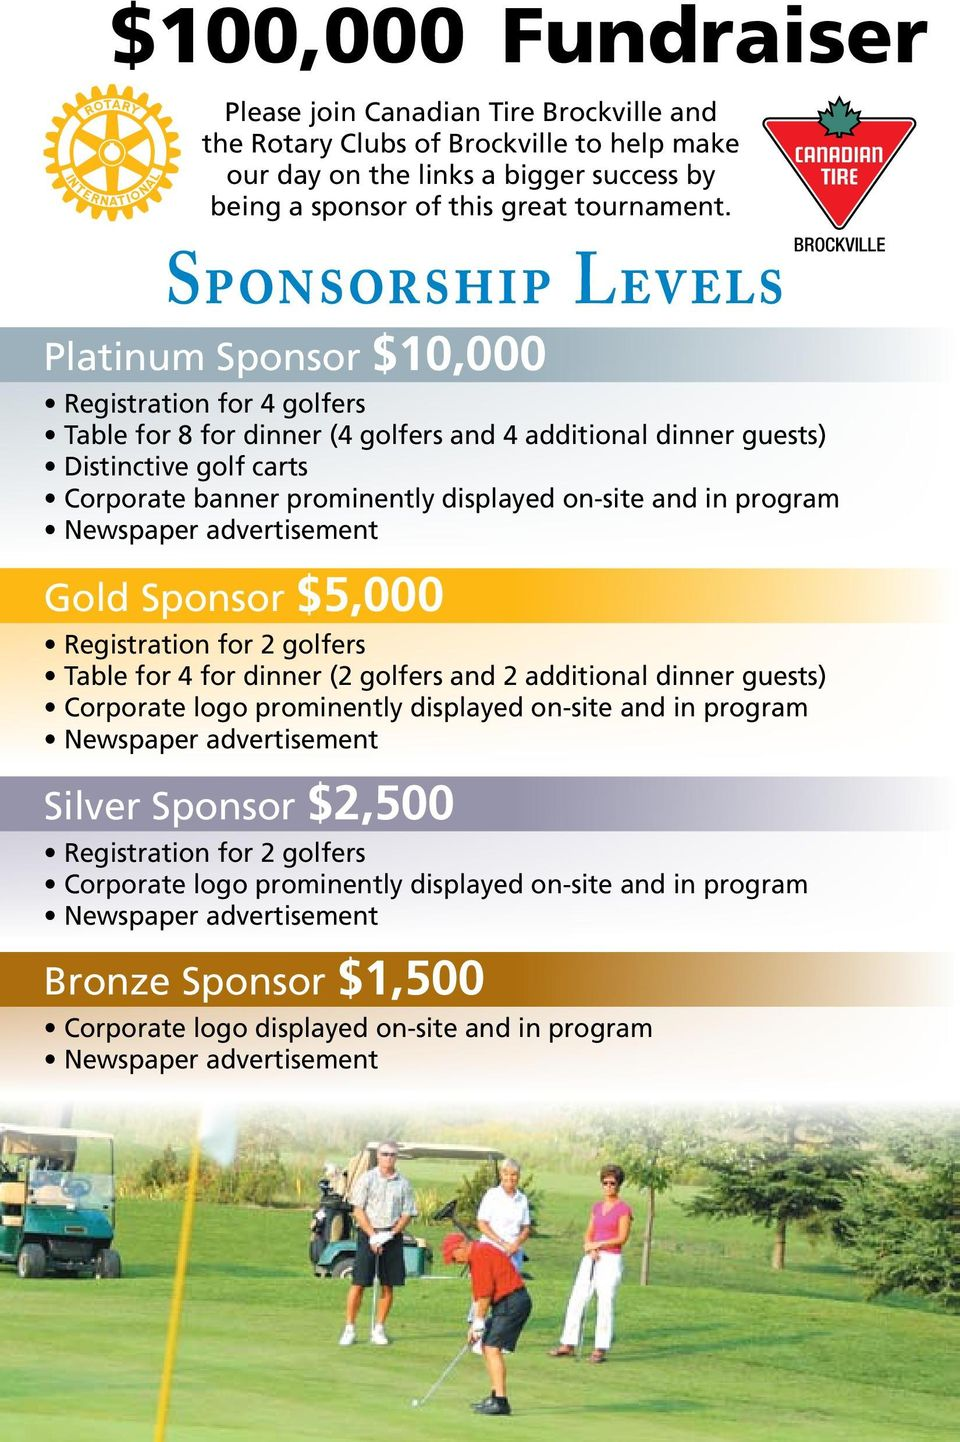 displayed on-site and in program Gold Sponsor $5,000 Registration for 2 golfers Table for 4 for dinner (2 golfers and 2 additional dinner guests) Corporate logo prominently displayed on-site